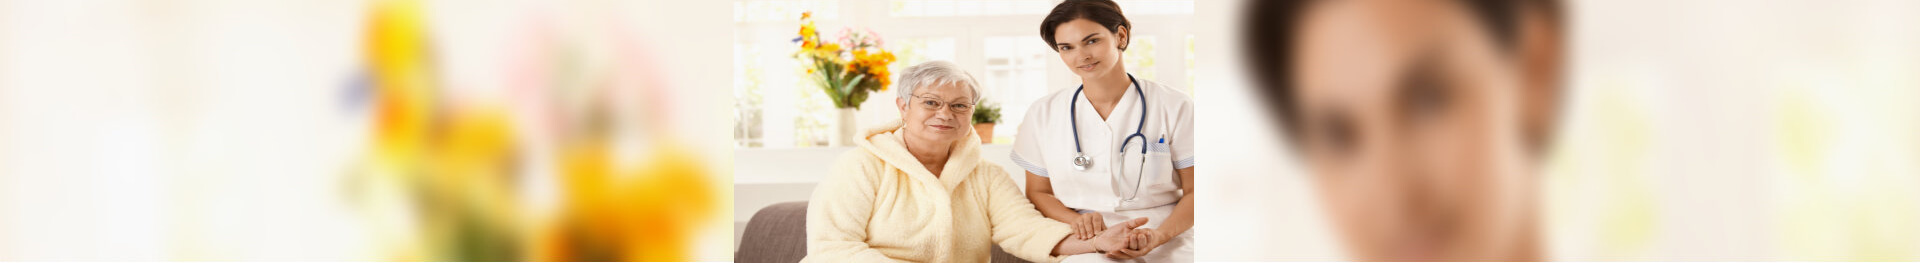 caregiver measuring pulse rate of senior woman at home